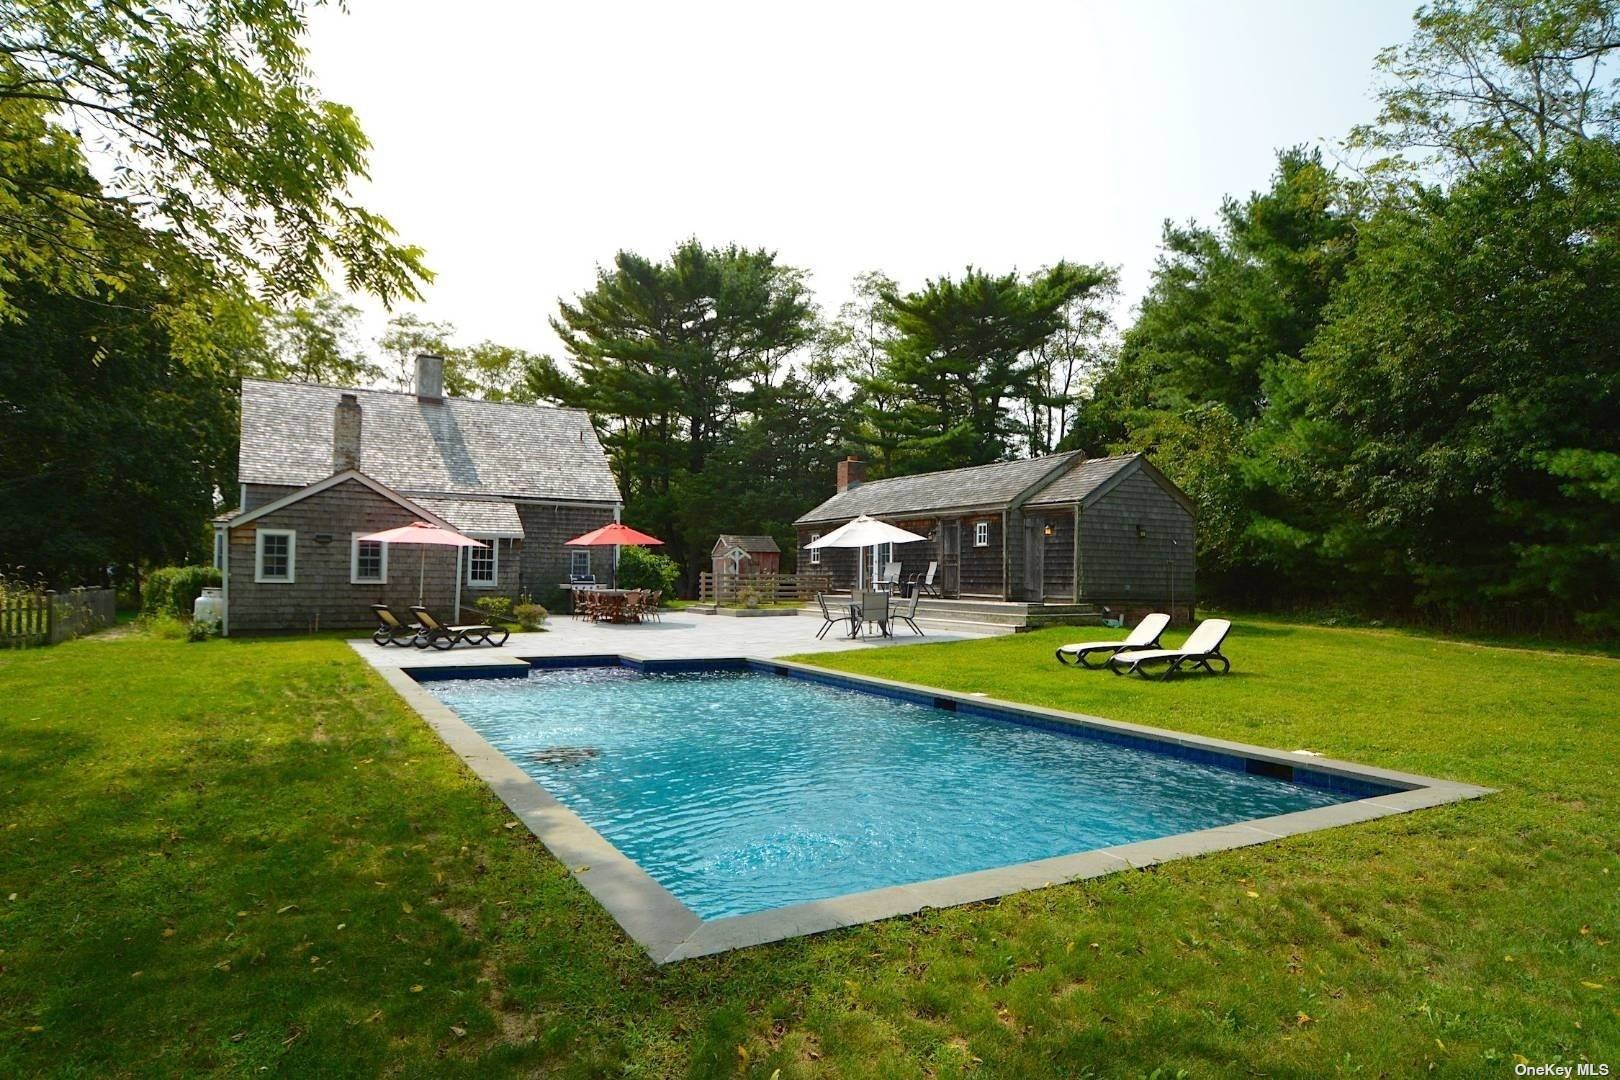 Magnificently restored historic farmhouse with heated, Gunite pool on private, shy 2 acres. Enter through the long country driveway to the pool/guesthouse and large wine cellar that could easily be transformed into a state-of-the-art gym. The main house has been lovingly restored to it's original with modern updates throughout. As with most homes of this era, the home was anchored by three central fireplaces: one for cooking, one for baking and the other for heat. These could easily be converted to gas. The formal dining room is off of the open dining/living area and the beautifully appointed en-suite Master bedroom with a private courtyard is off of the classic den/library. The modernized kitchen still has remnants of the original cooking garden directly outside. Upstairs has an additional two bedrooms and a renovated full bath with walk in closets. The pool-house with fireplace/full bath resides adjacent to the pool & large patio and sits atop an extensive wine cellar.